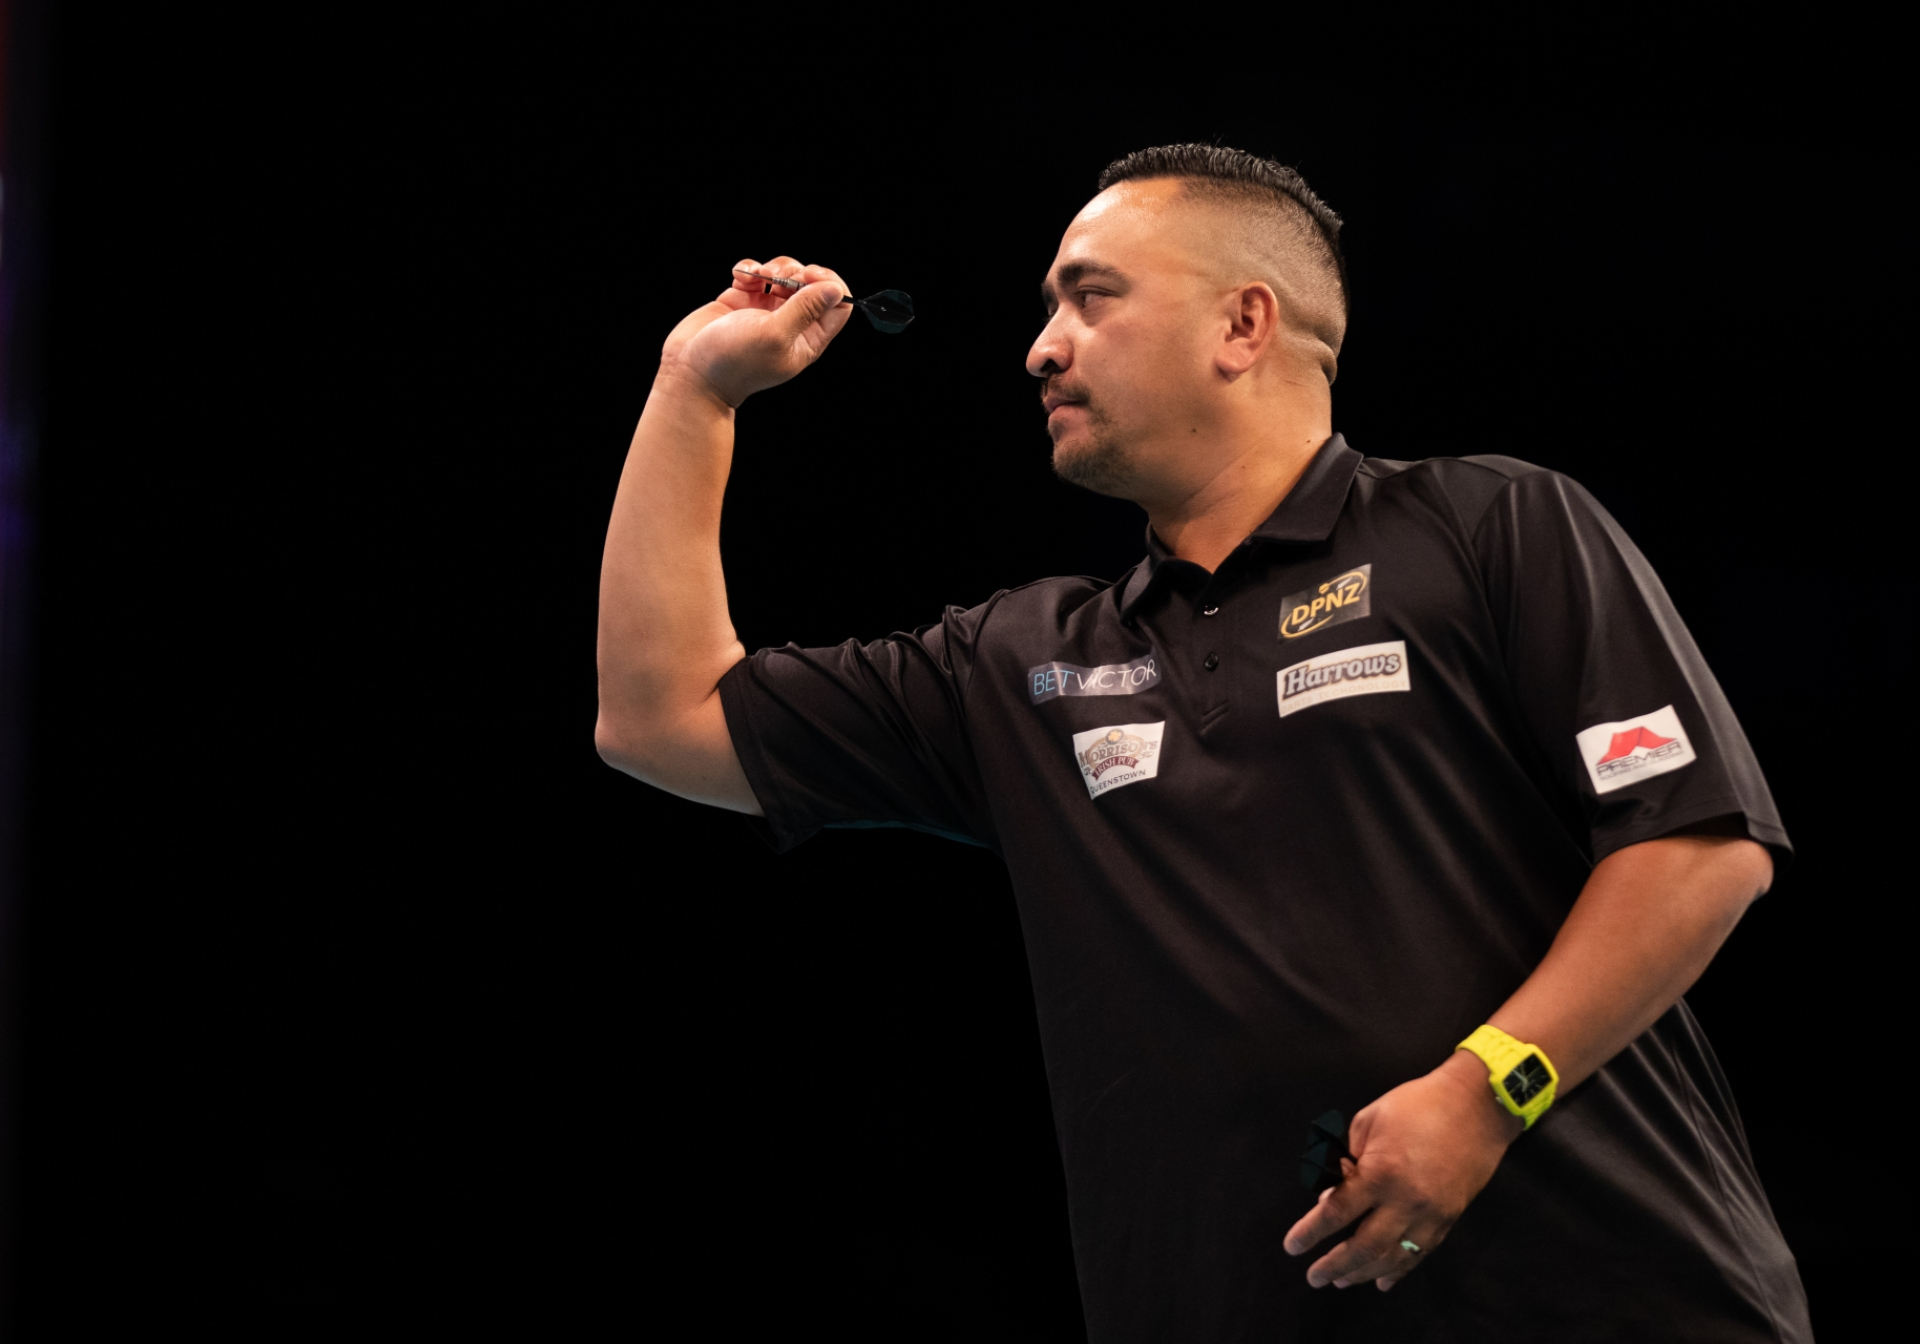 New Zealand's Haupai Puha - BetVictor World Cup of Darts (Stefan Strassenberg)